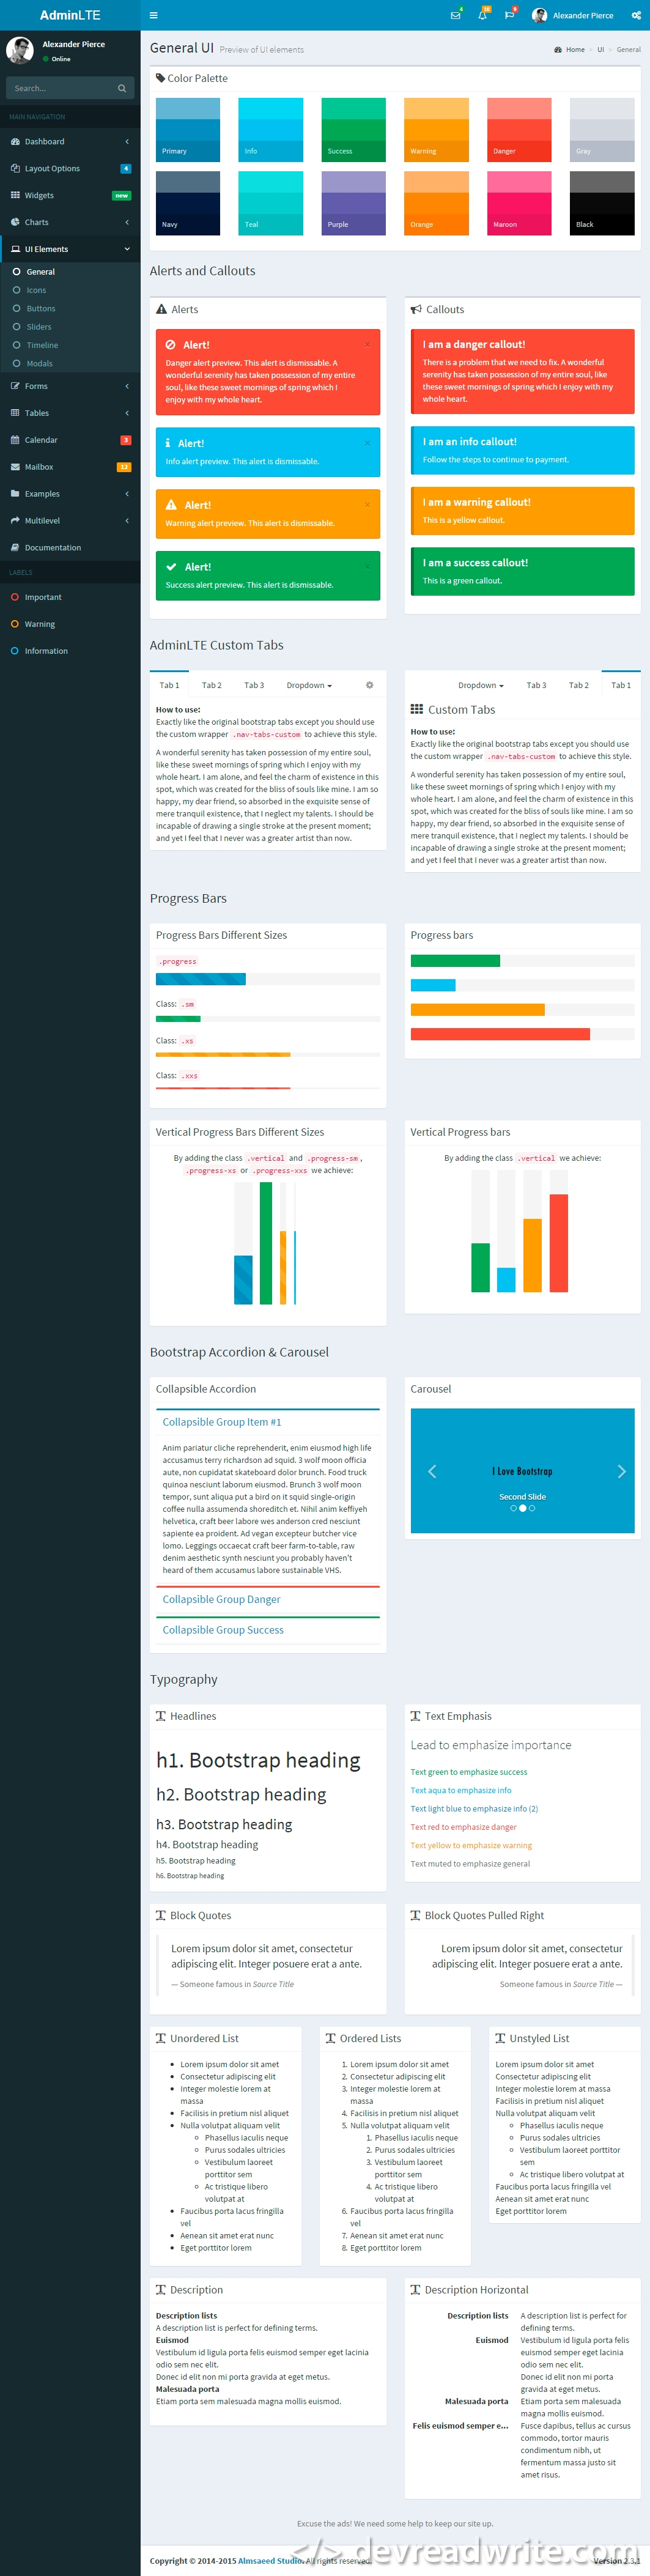 AdminLTE, screenshot of UI elements page